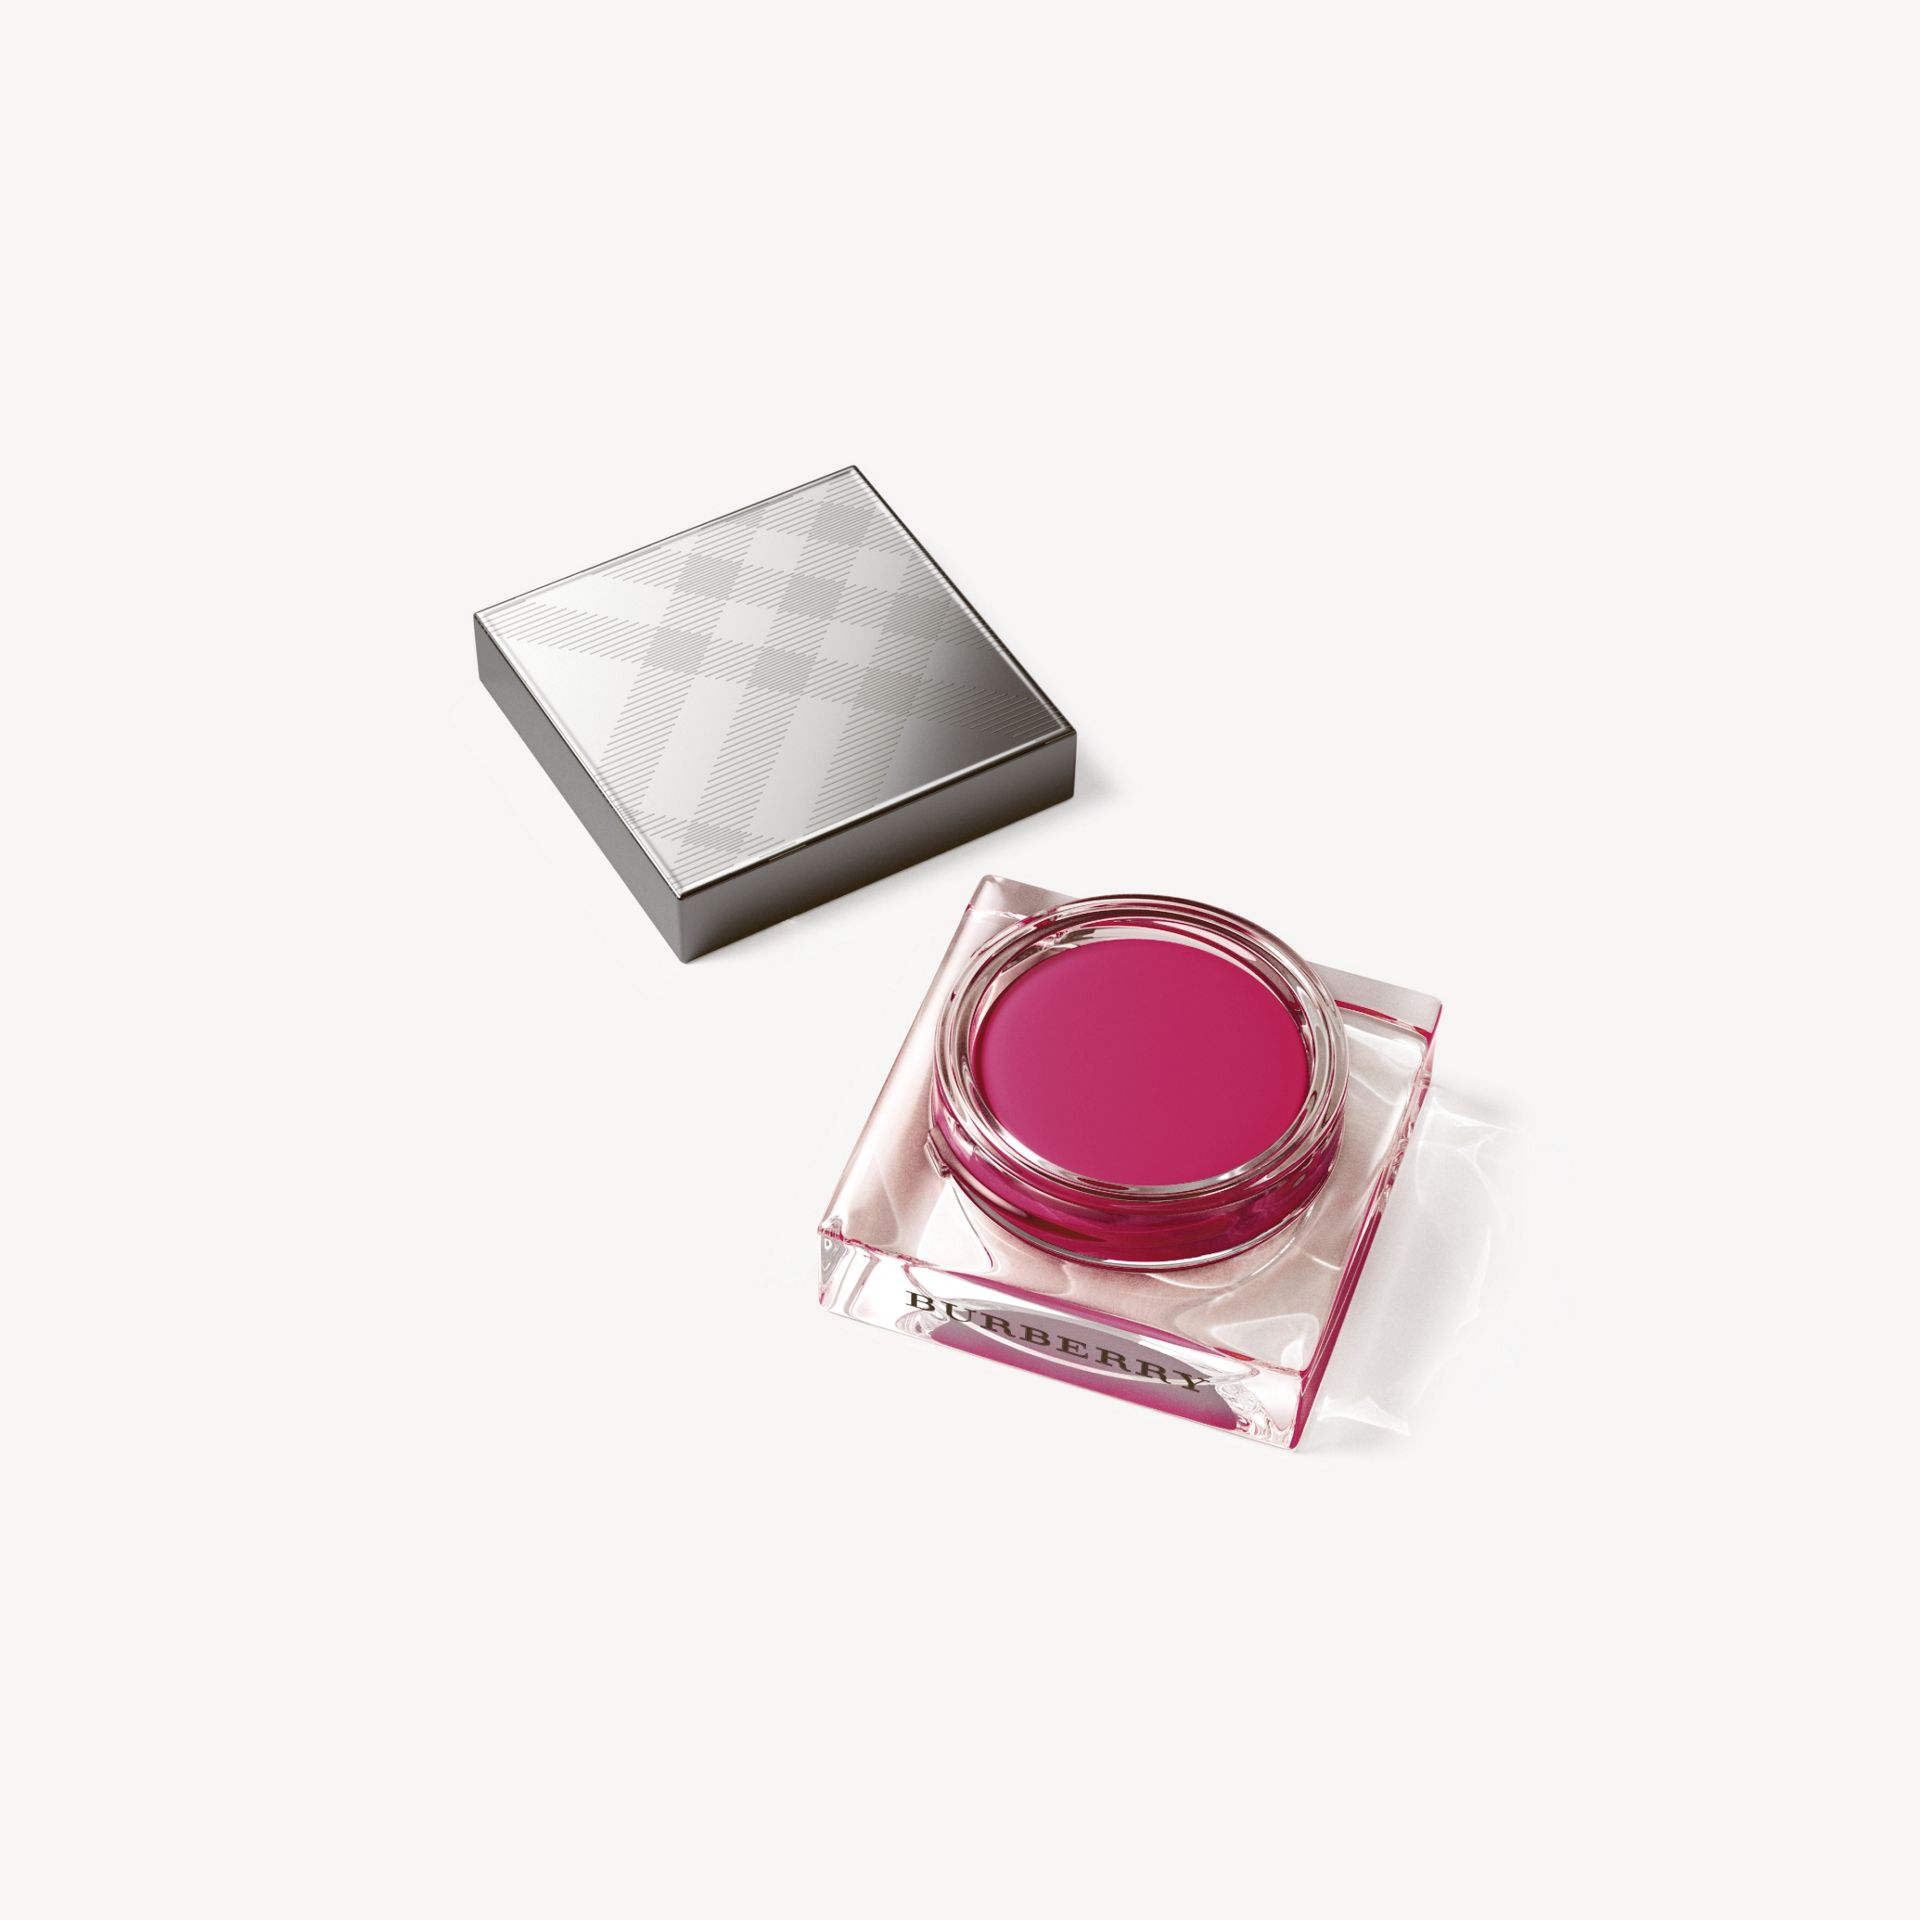 Румяна для щек и губ lip & Cheek Bloom, Purple Tulip № 11 (№) - Для женщин | Burberry - изображение 1